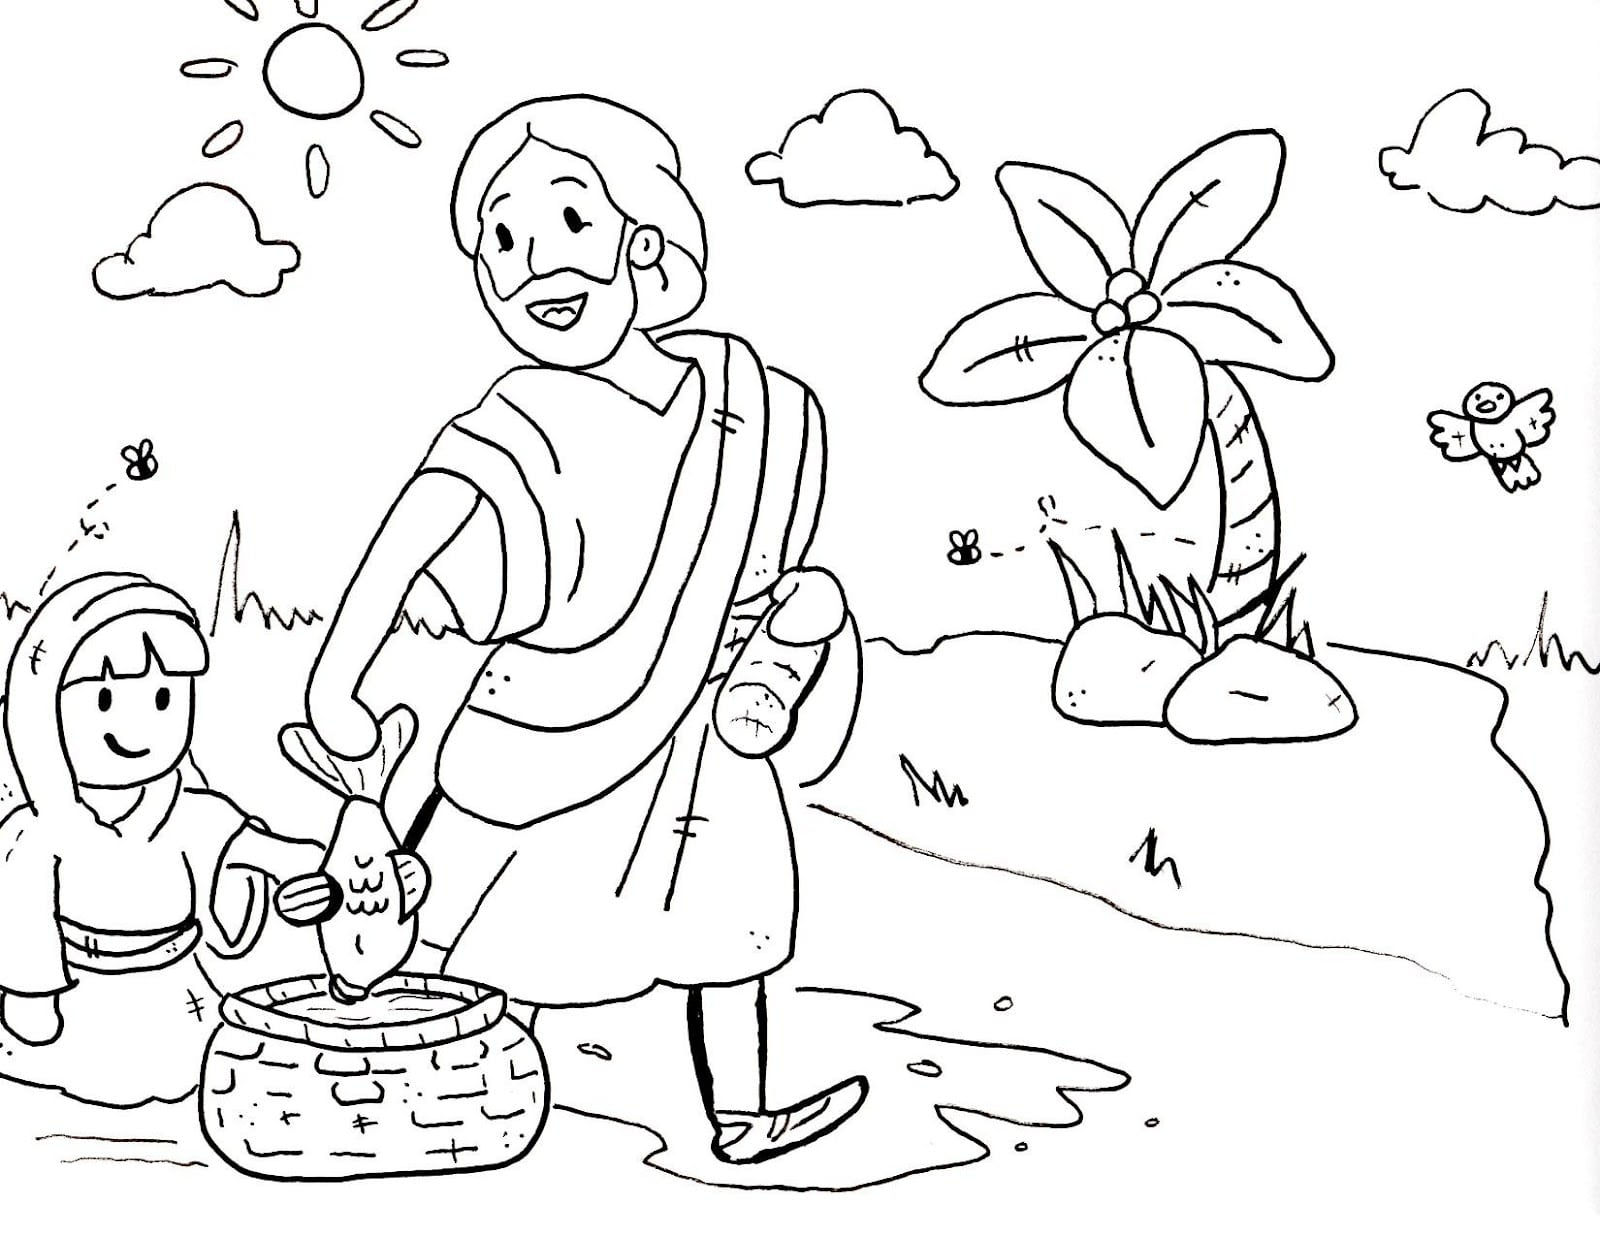 Sunday School Coloring Pages Awesome Free Coloring Pages For